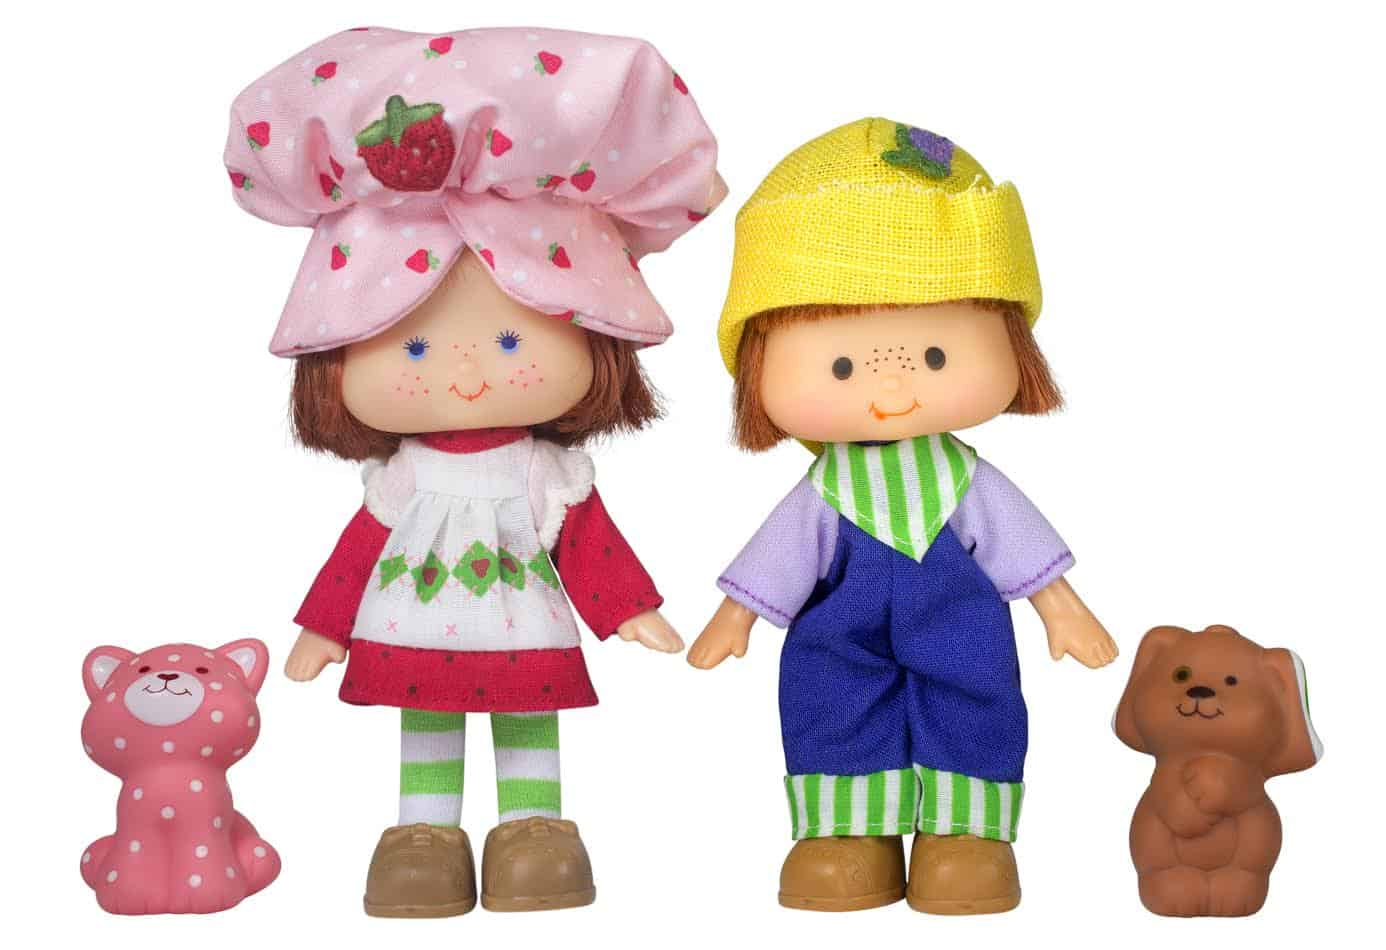 Strawberry Shortcake Classic Small Dolls 2-Pack